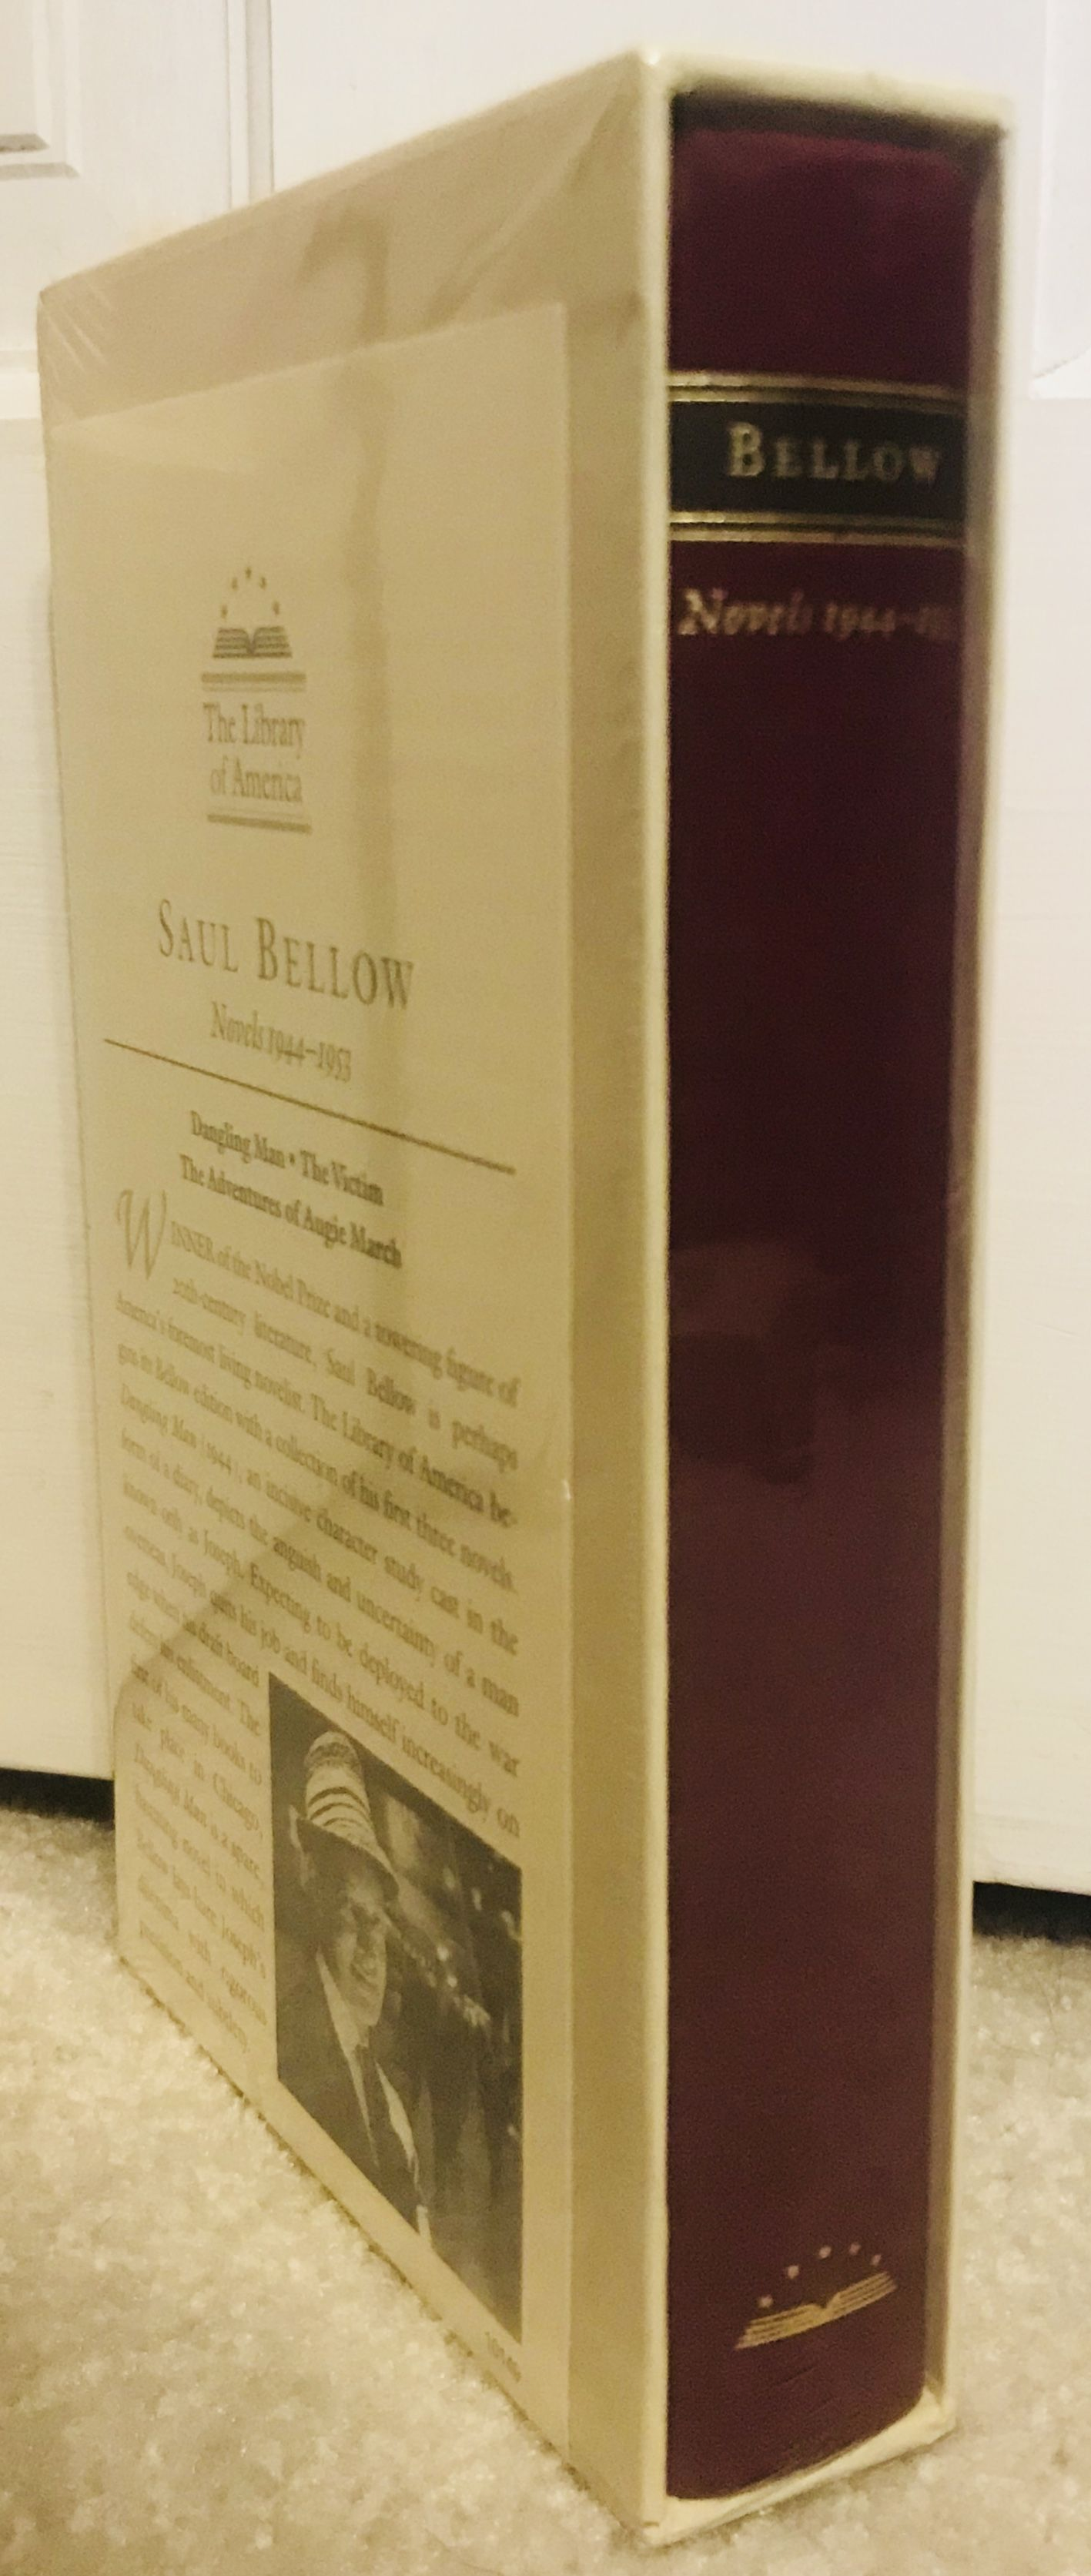 Saul Bellow: Novels 1944-1953: Dangling Man, The Victim, and The Adventures of Augie March (Library of America), Bellow, Saul